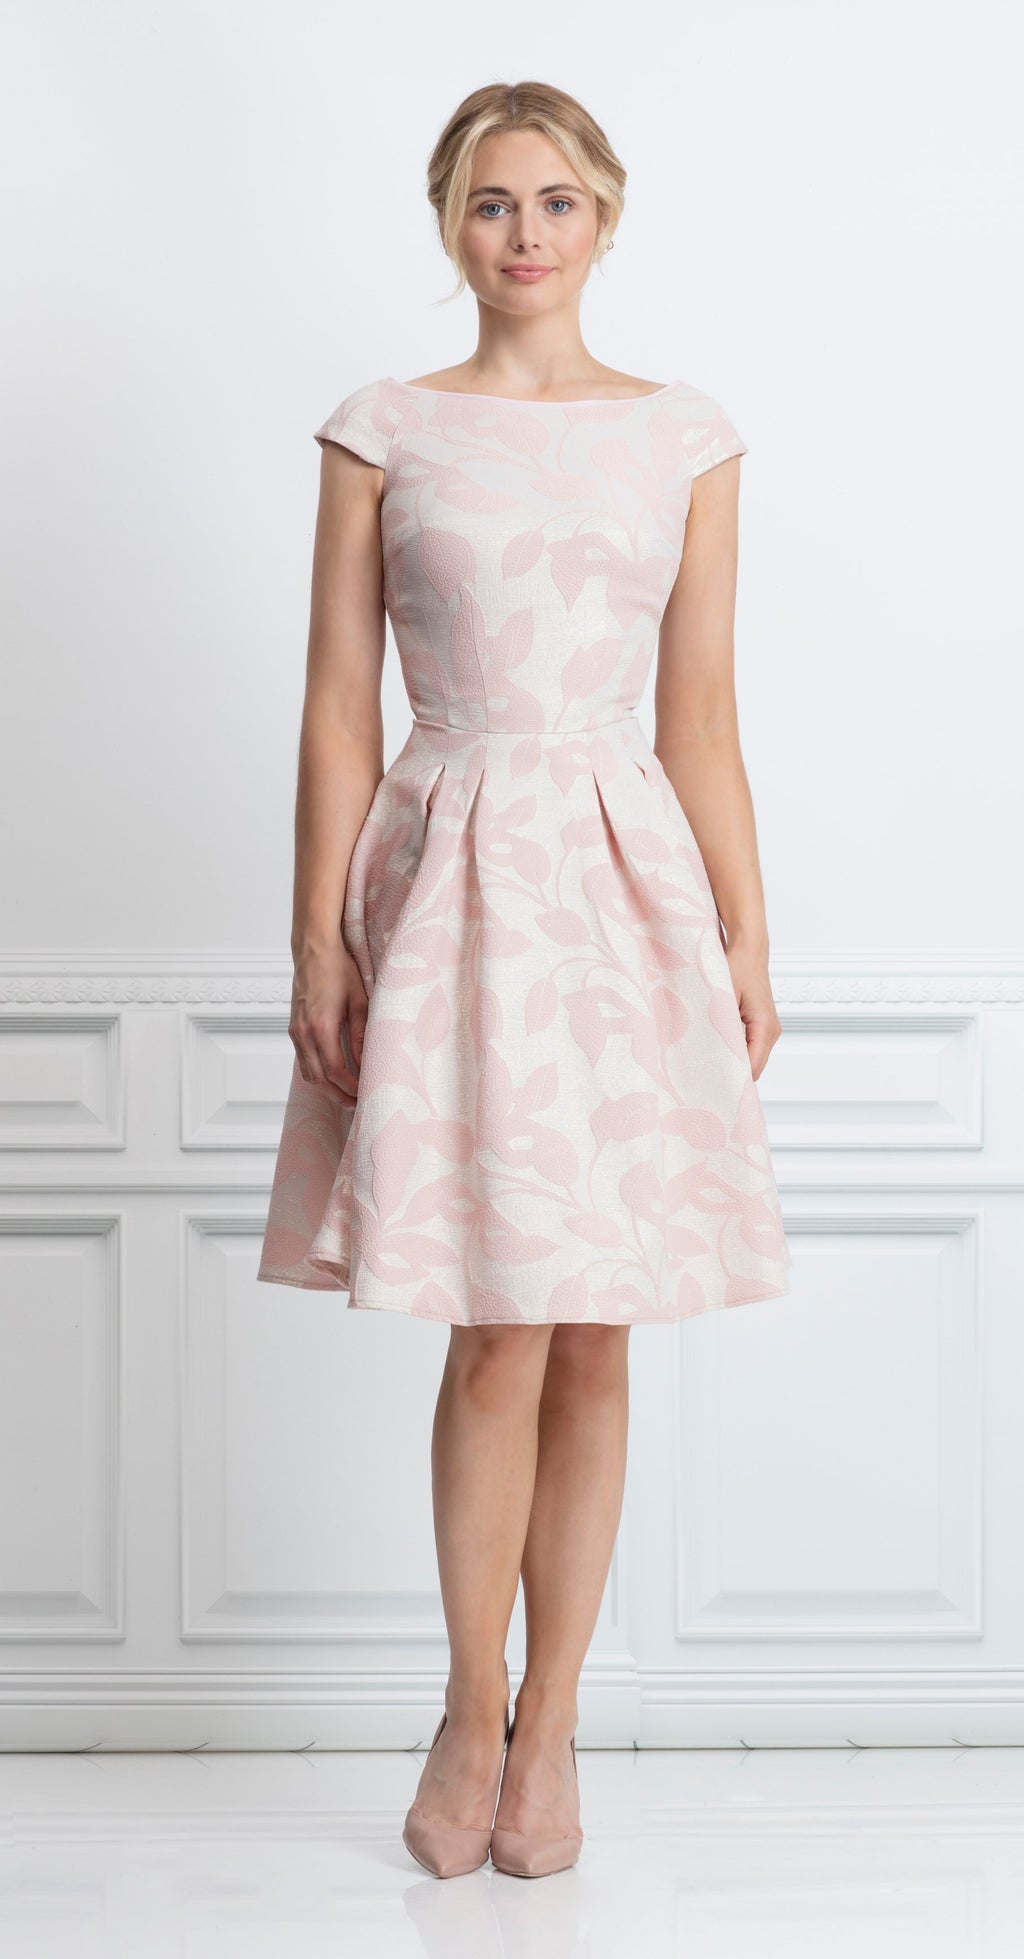 Alameda Dress in pink metallic jacquard